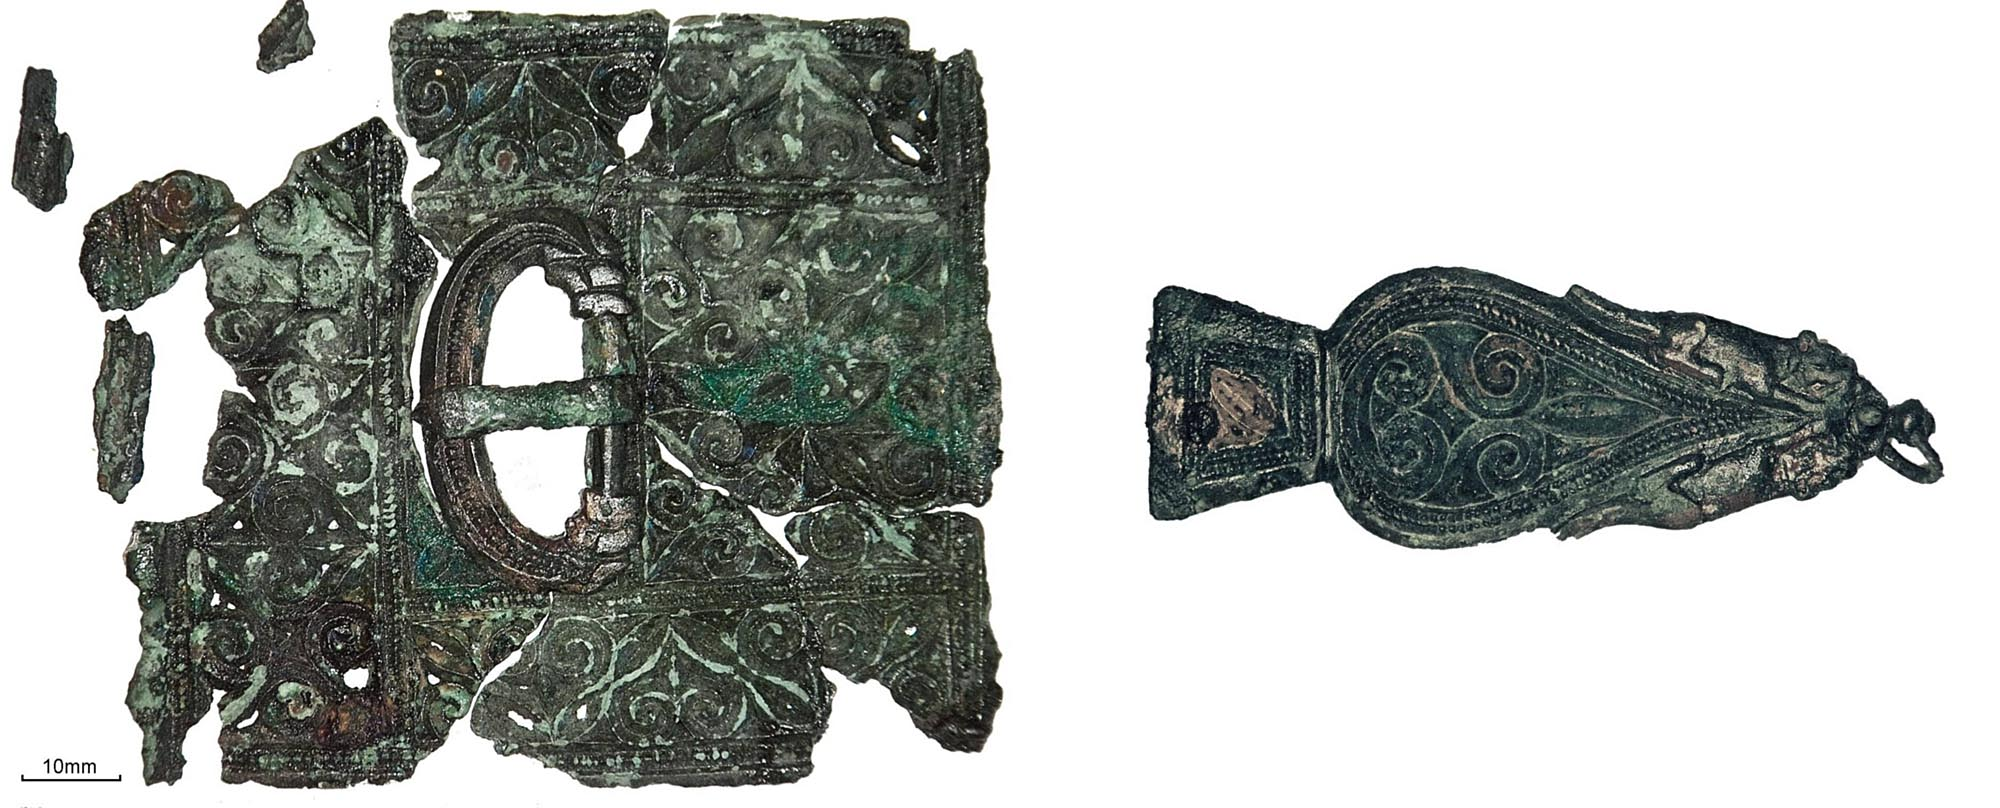 A late Roman belt set, comprising a belt buckle, belt plate and strap end, found in a grave of a late 4th century Roman soldier or civil servant. Found near Western Road, Leicester - University of Leicester Archaeological Services